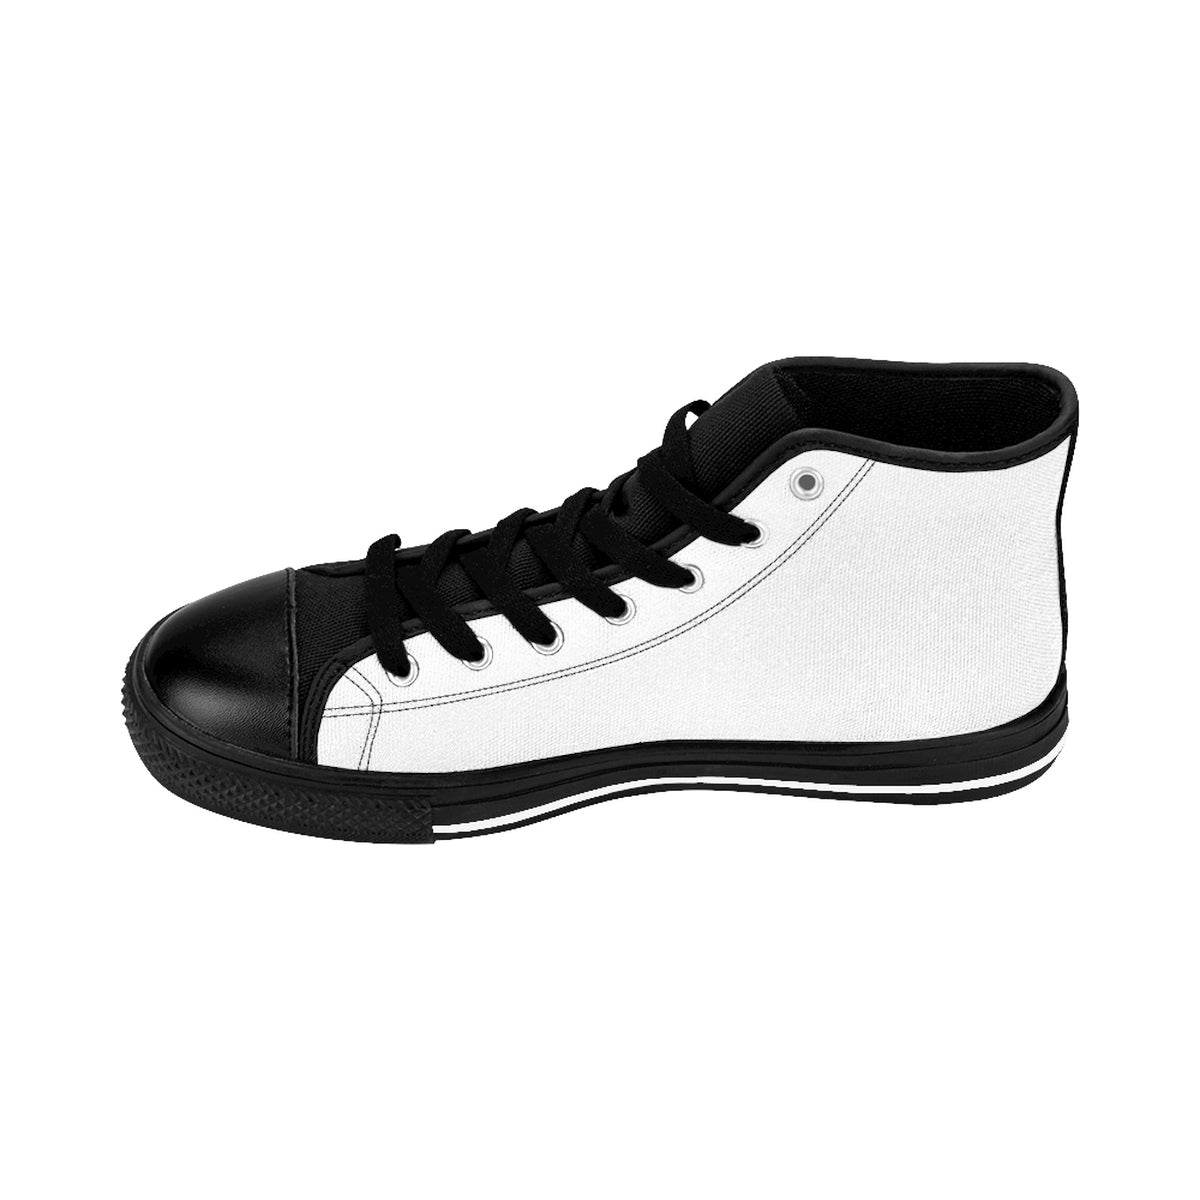 WCI/White/White/Men's High-top Sneakers